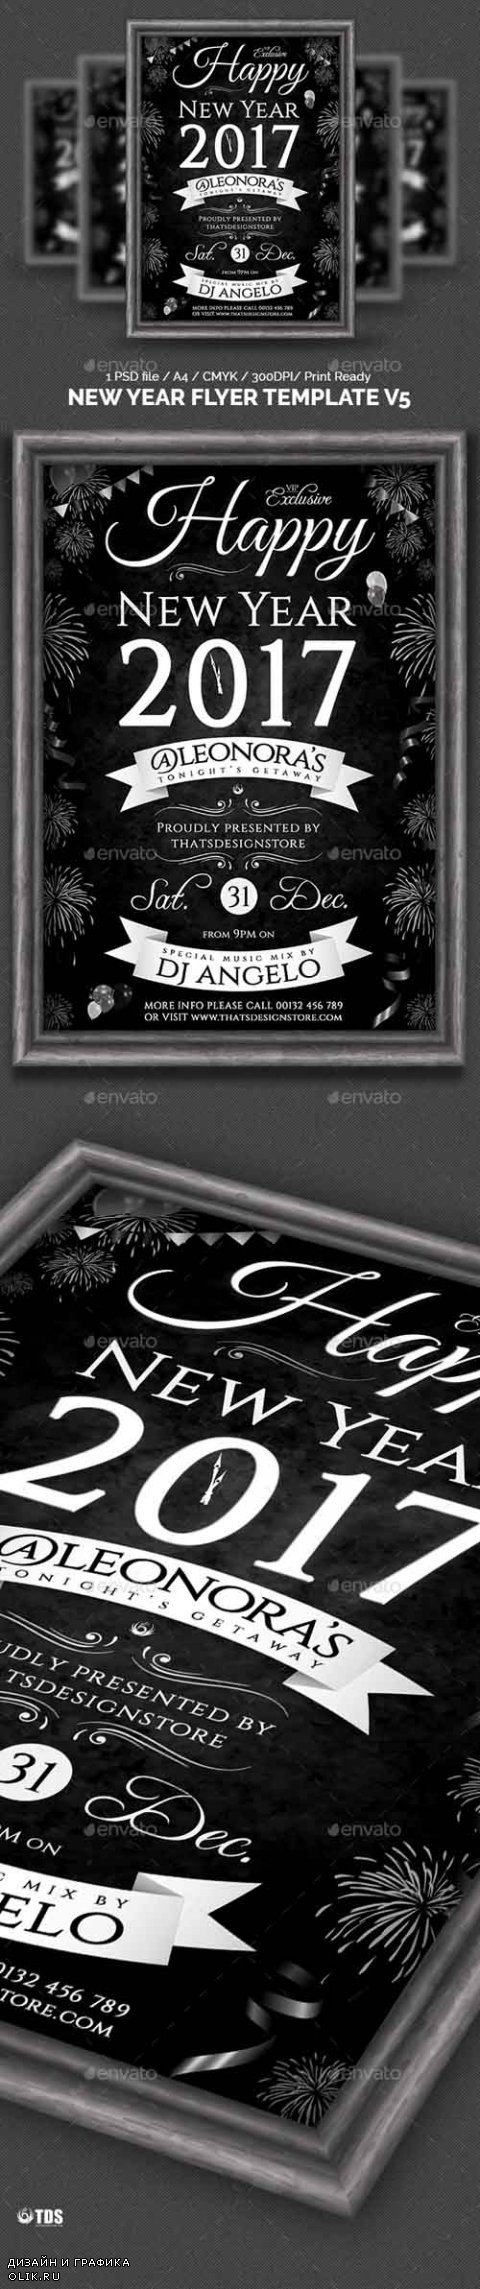 New Year Flyer Template V5 13504505